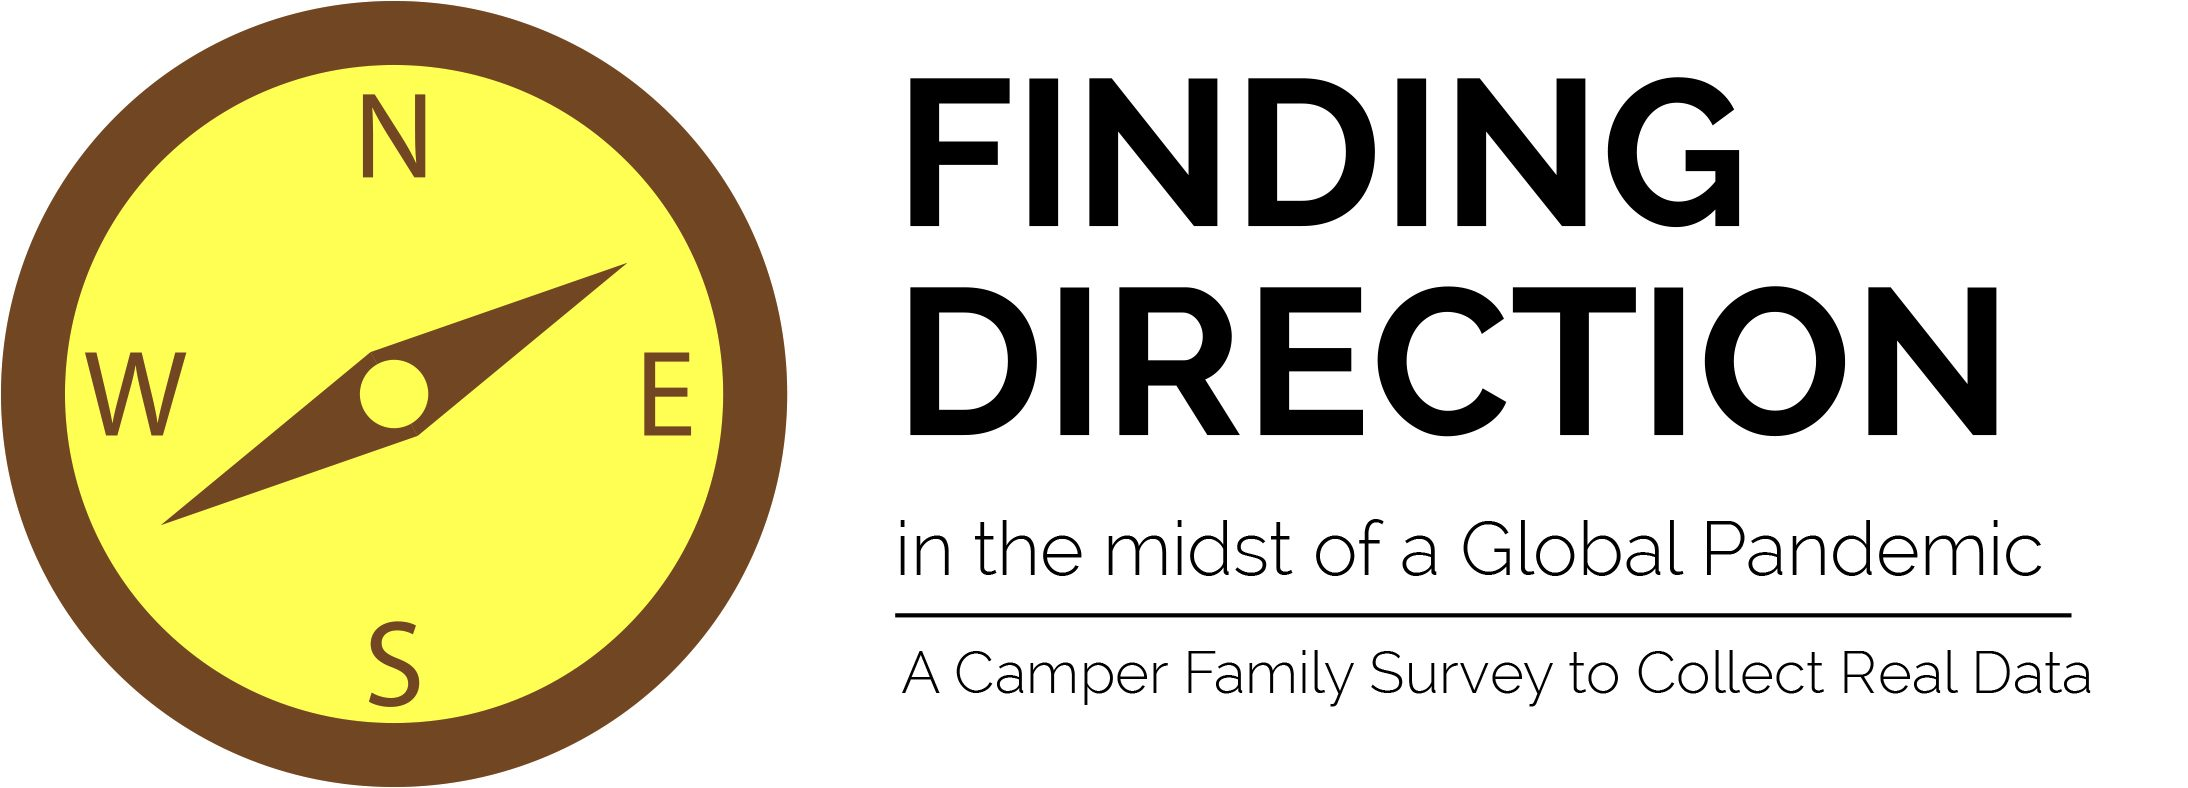 Finding Direction: Data for Camps in the Midst of a Pandemic